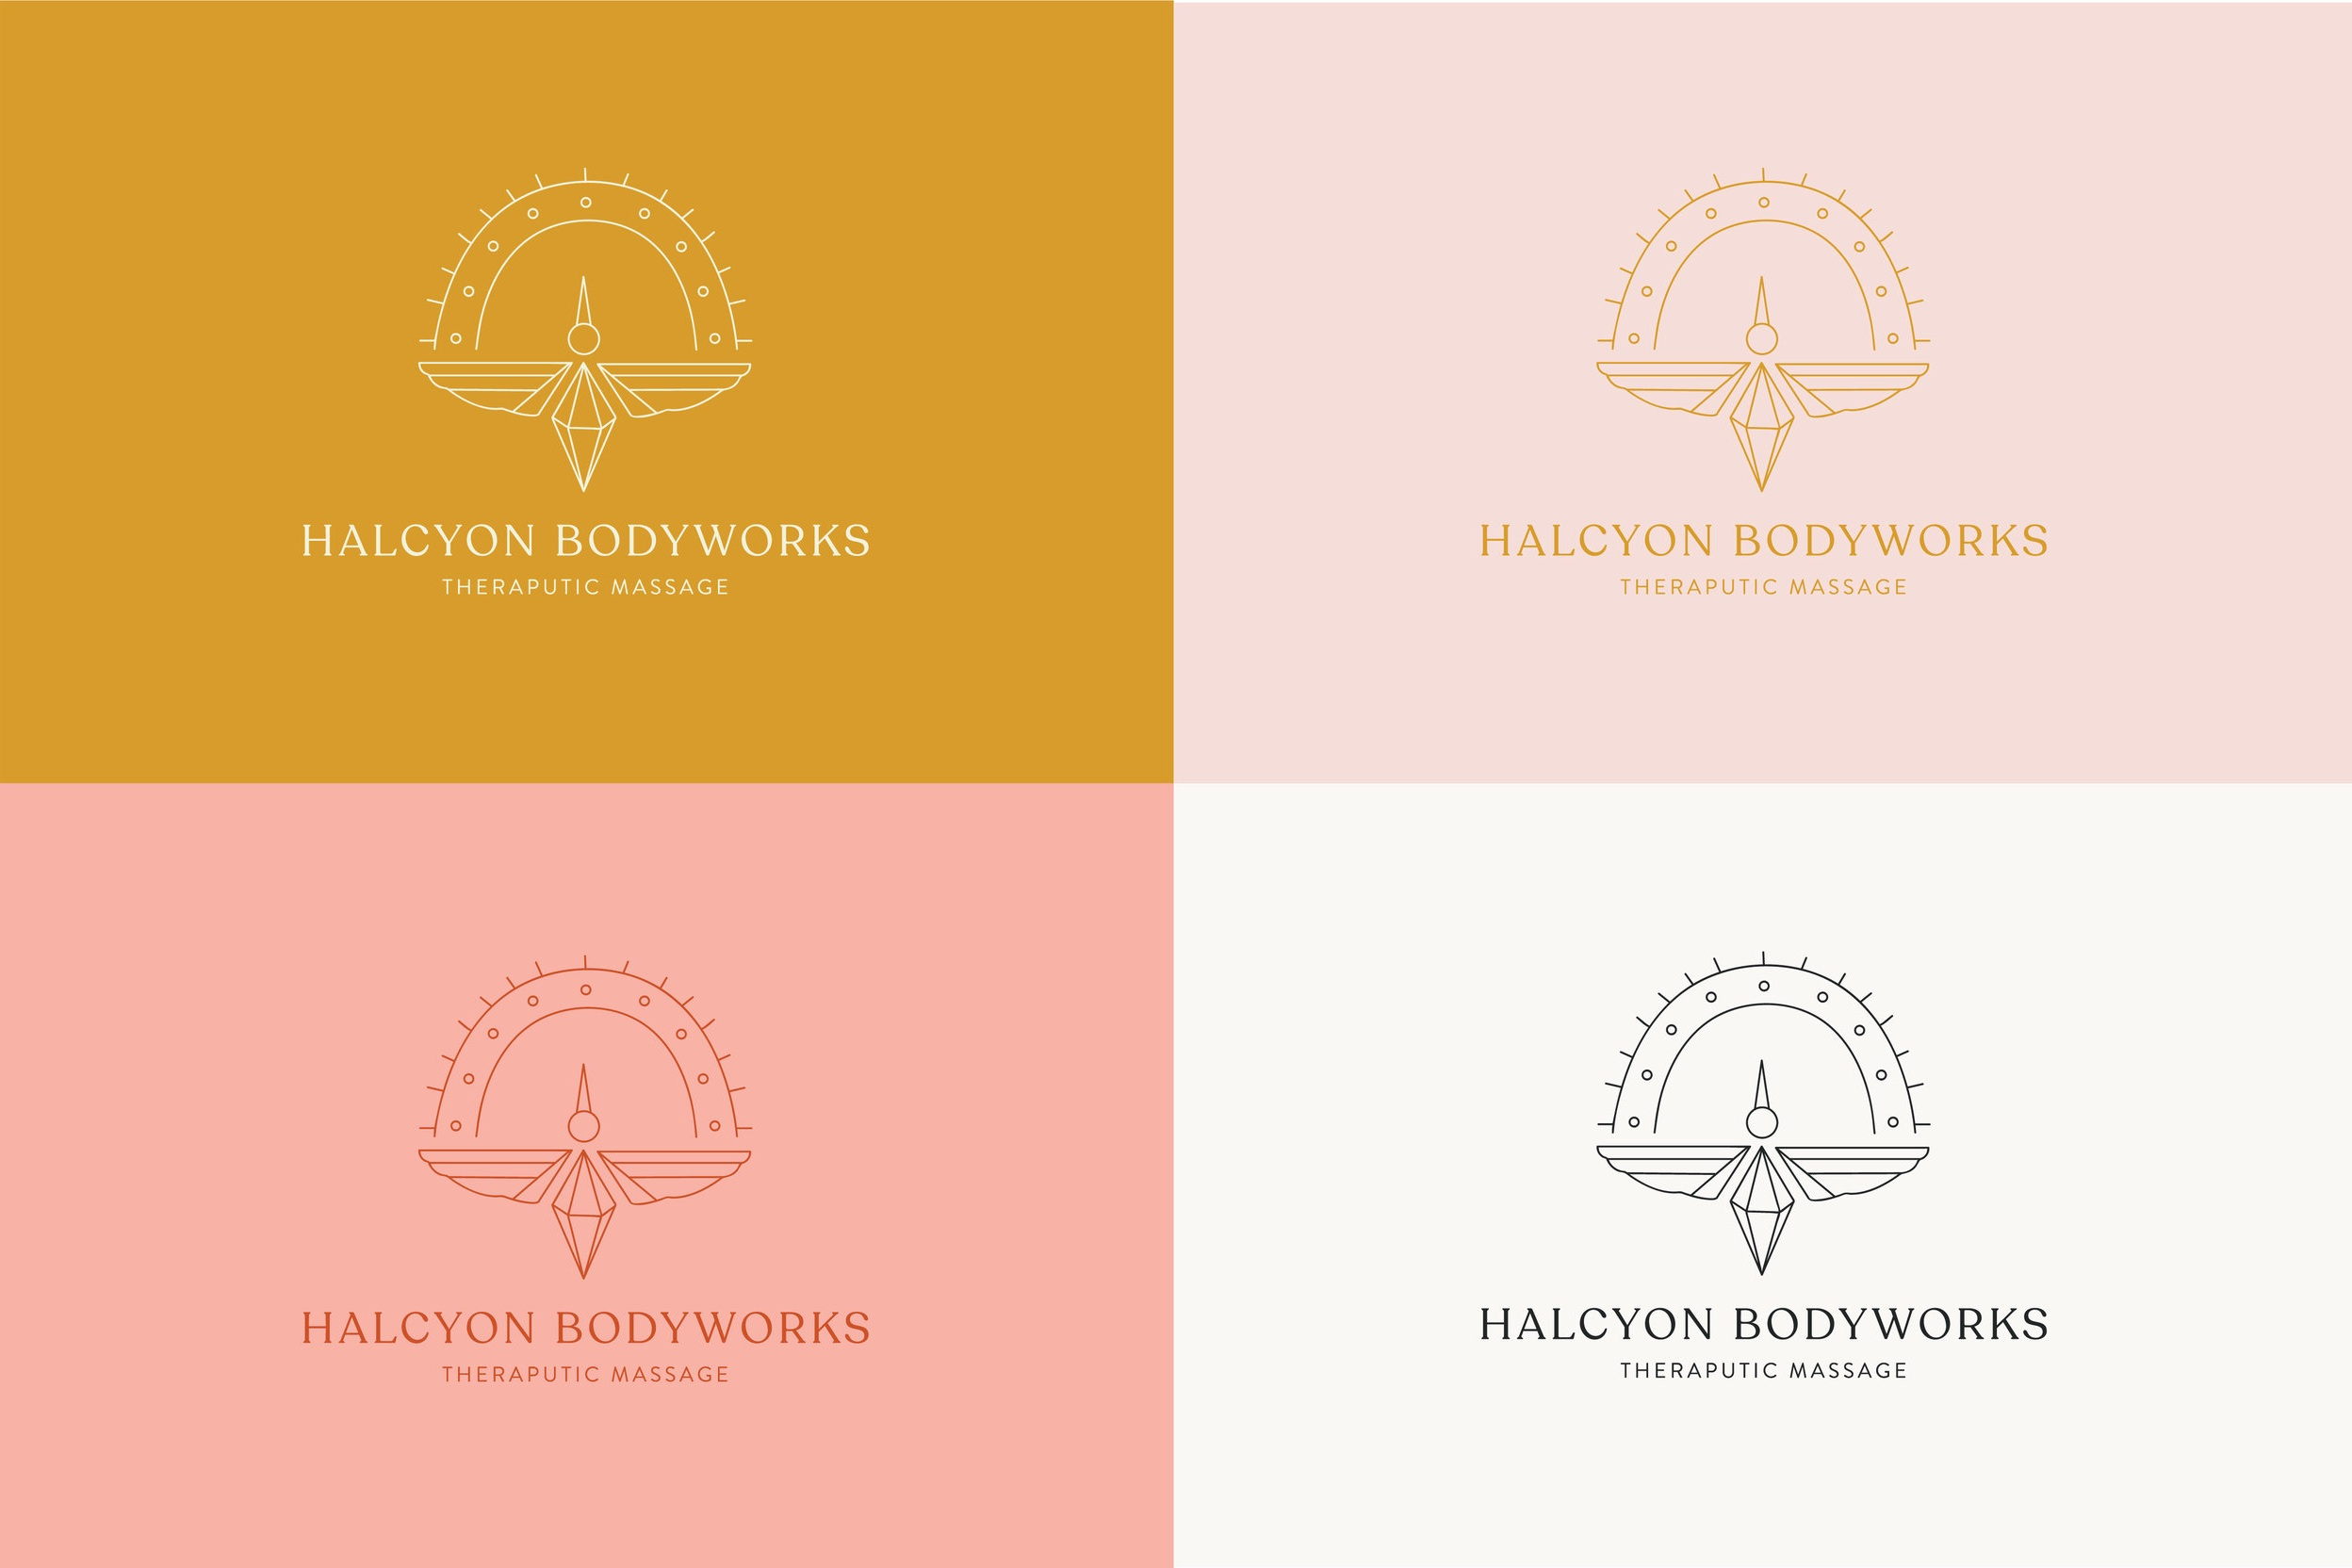 Holcyon-Bodyworks-Logo-color-sheet---01.jpg